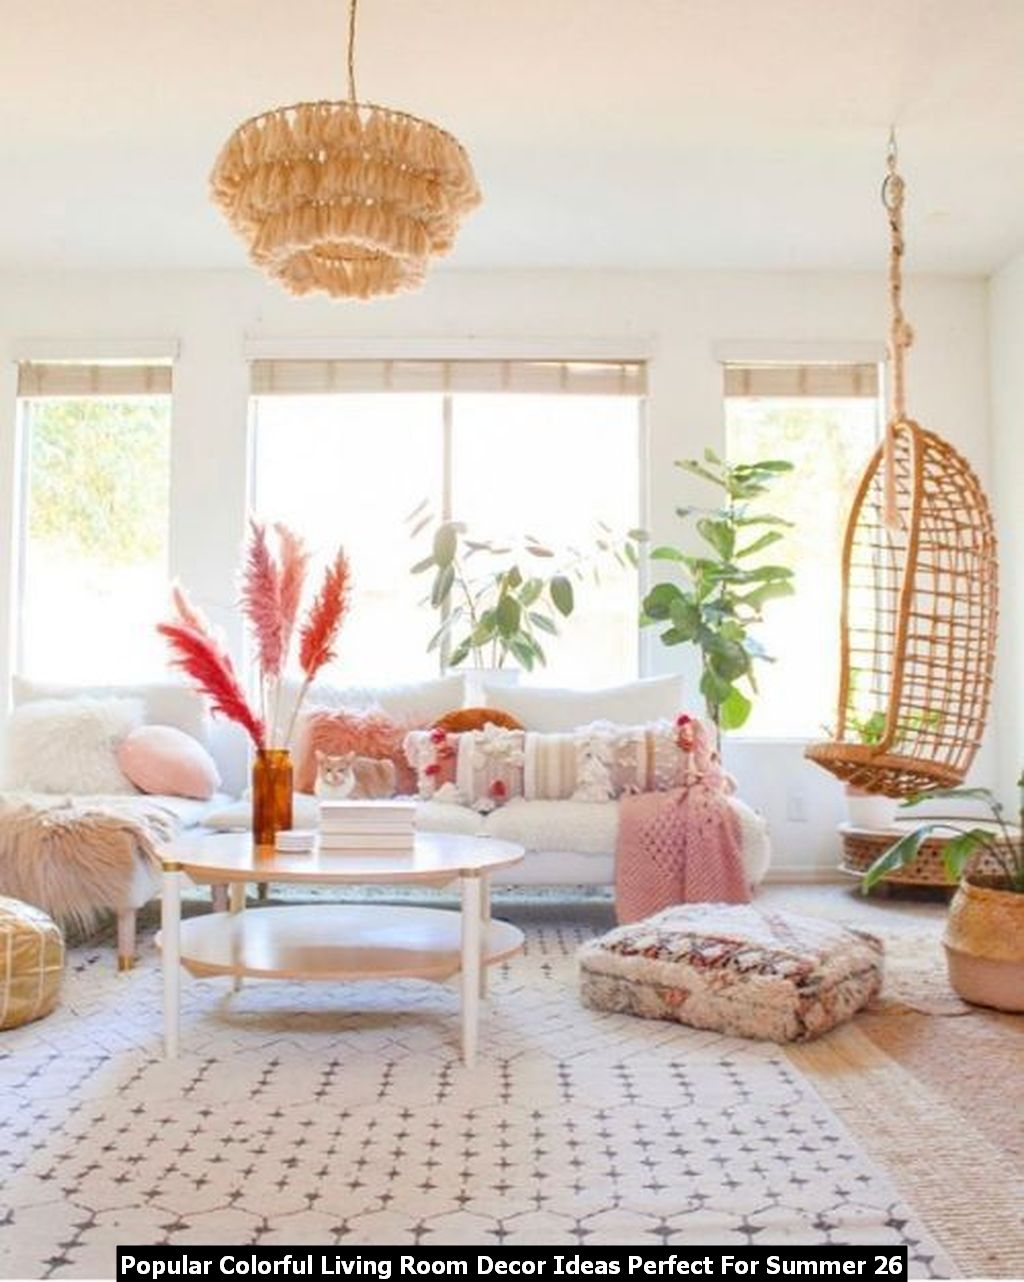 Popular Colorful Living Room Decor Ideas Perfect For Summer 26